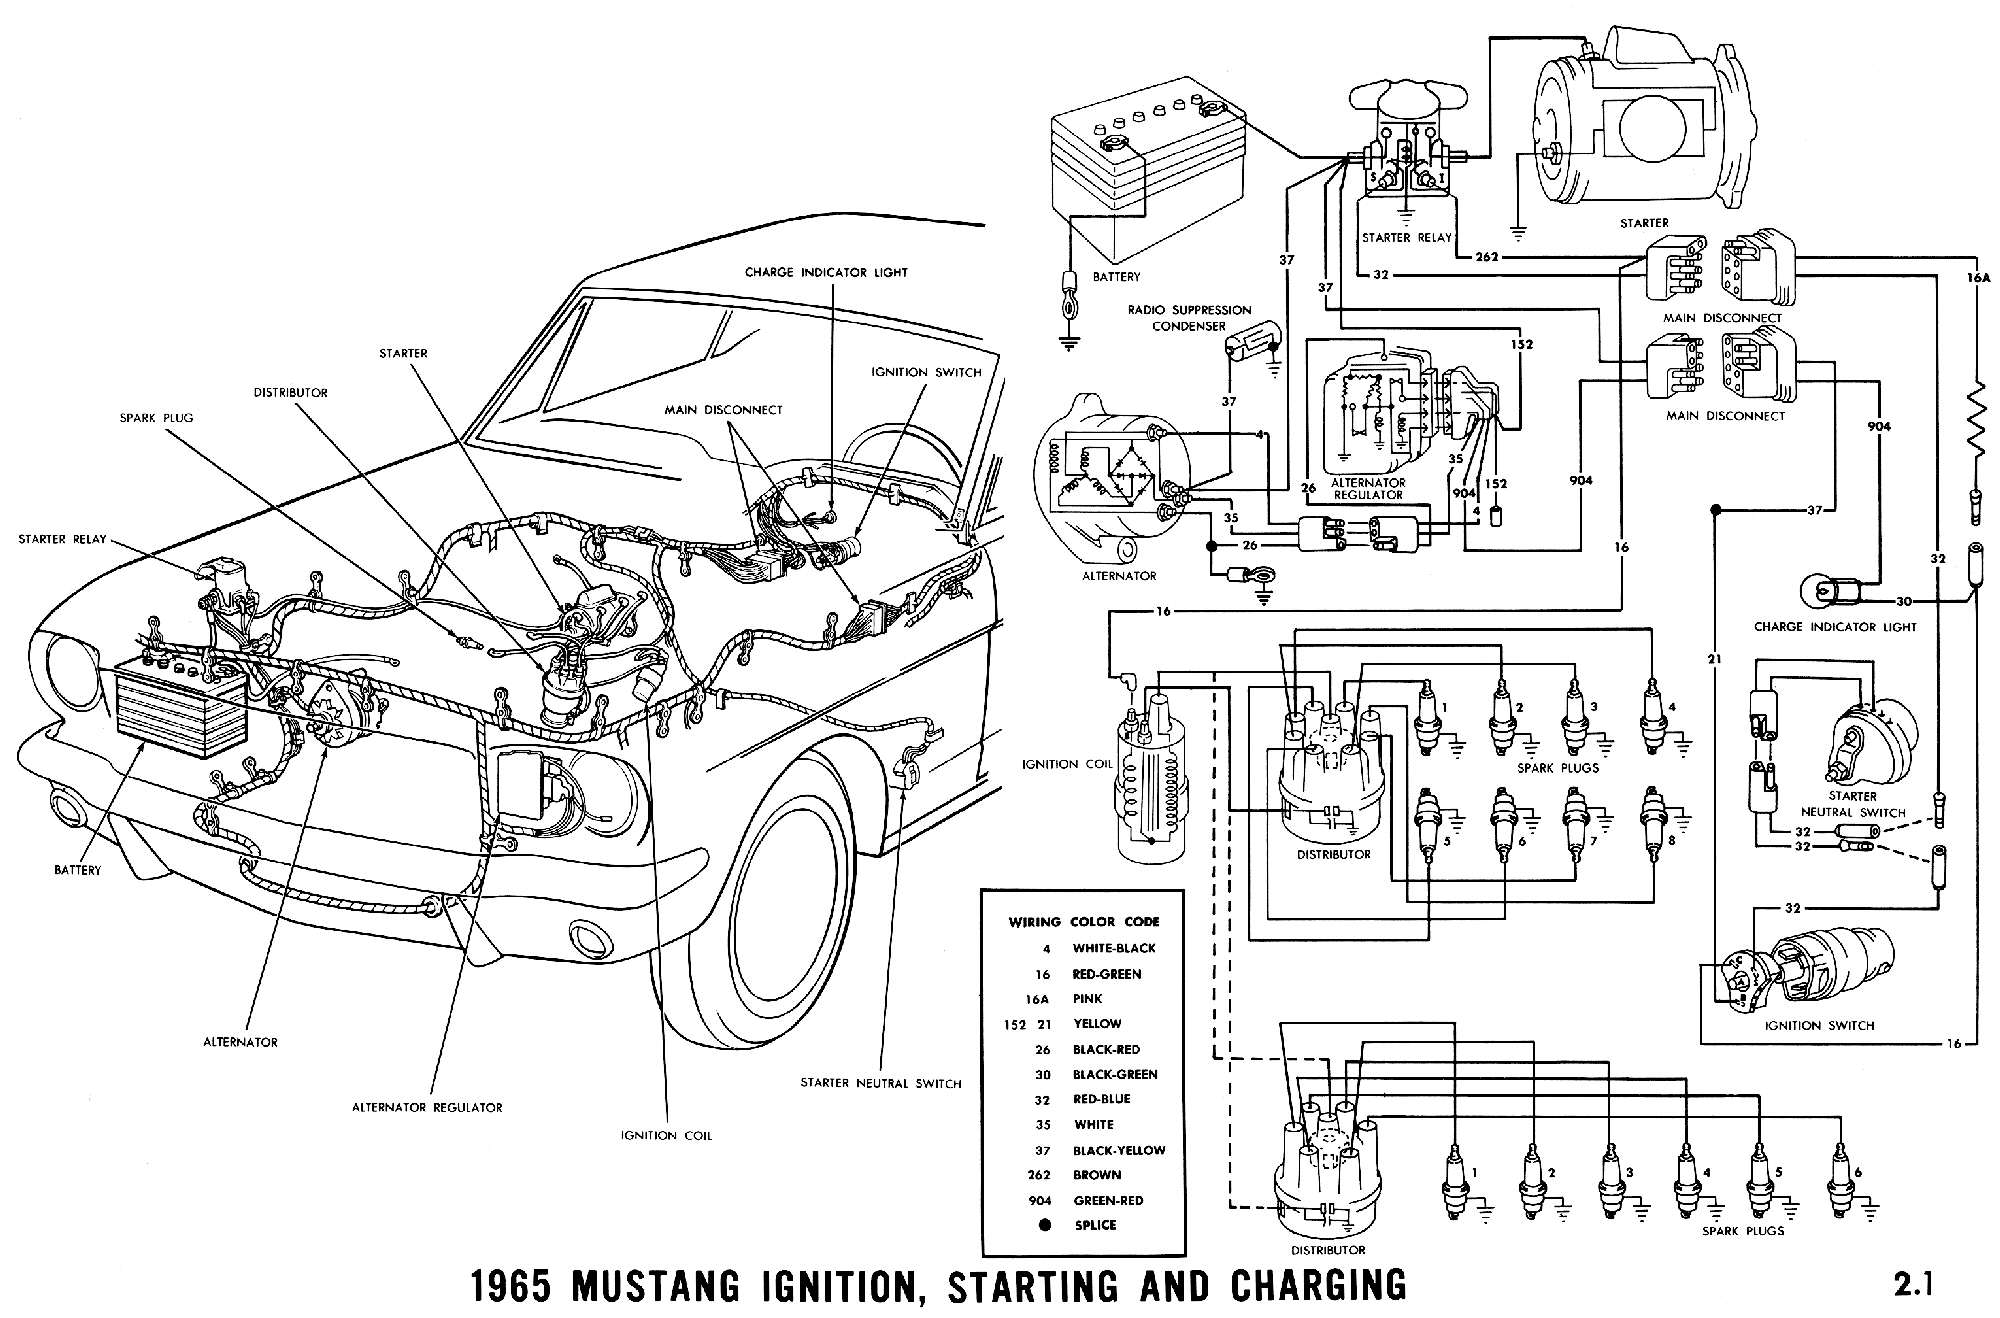 1965c 1965 mustang wiring diagrams average joe restoration engine wiring diagram 1967 mustang v8 at mifinder.co